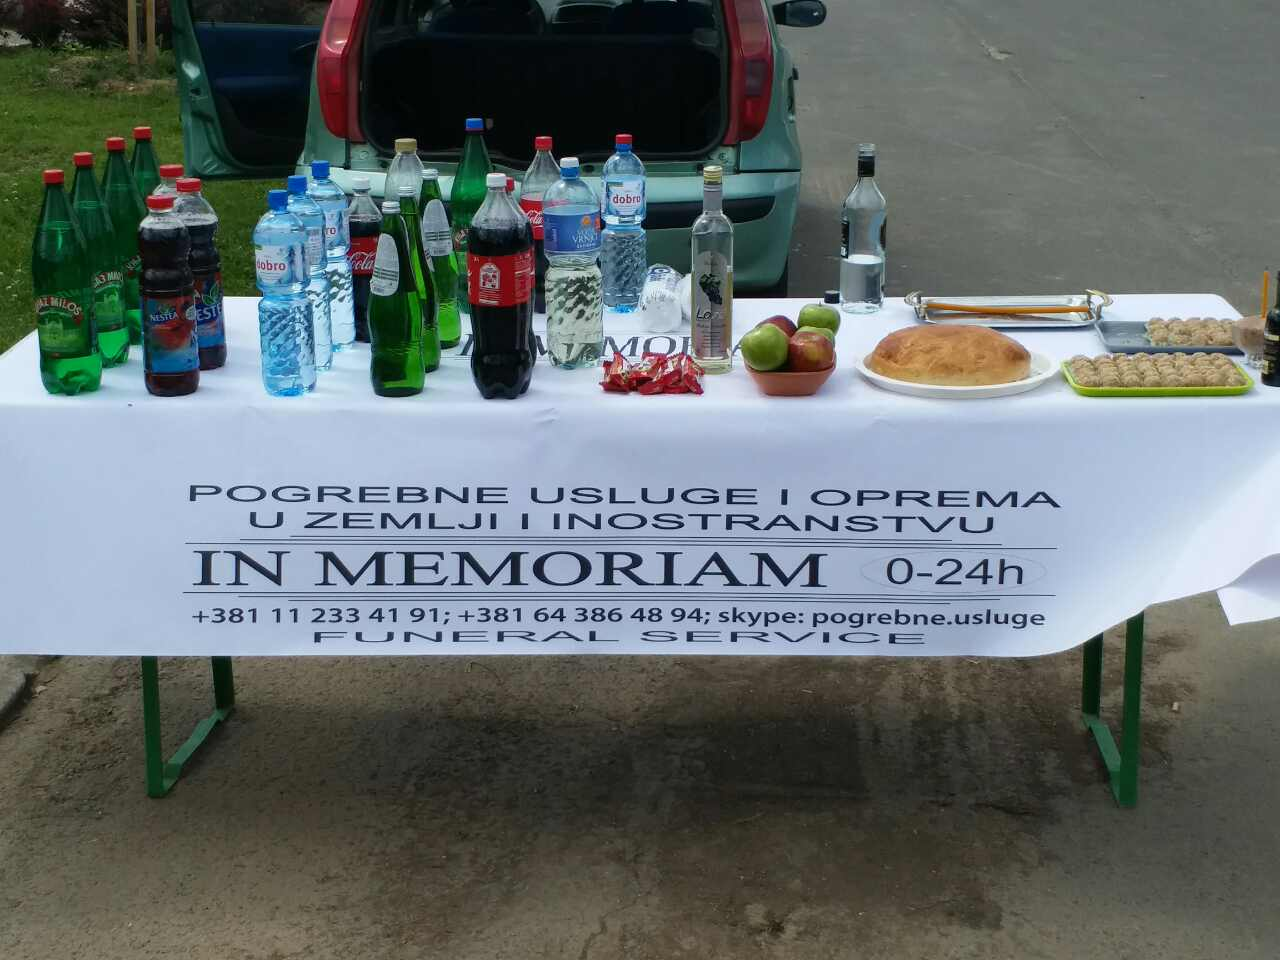 Refreshments at the cemetery